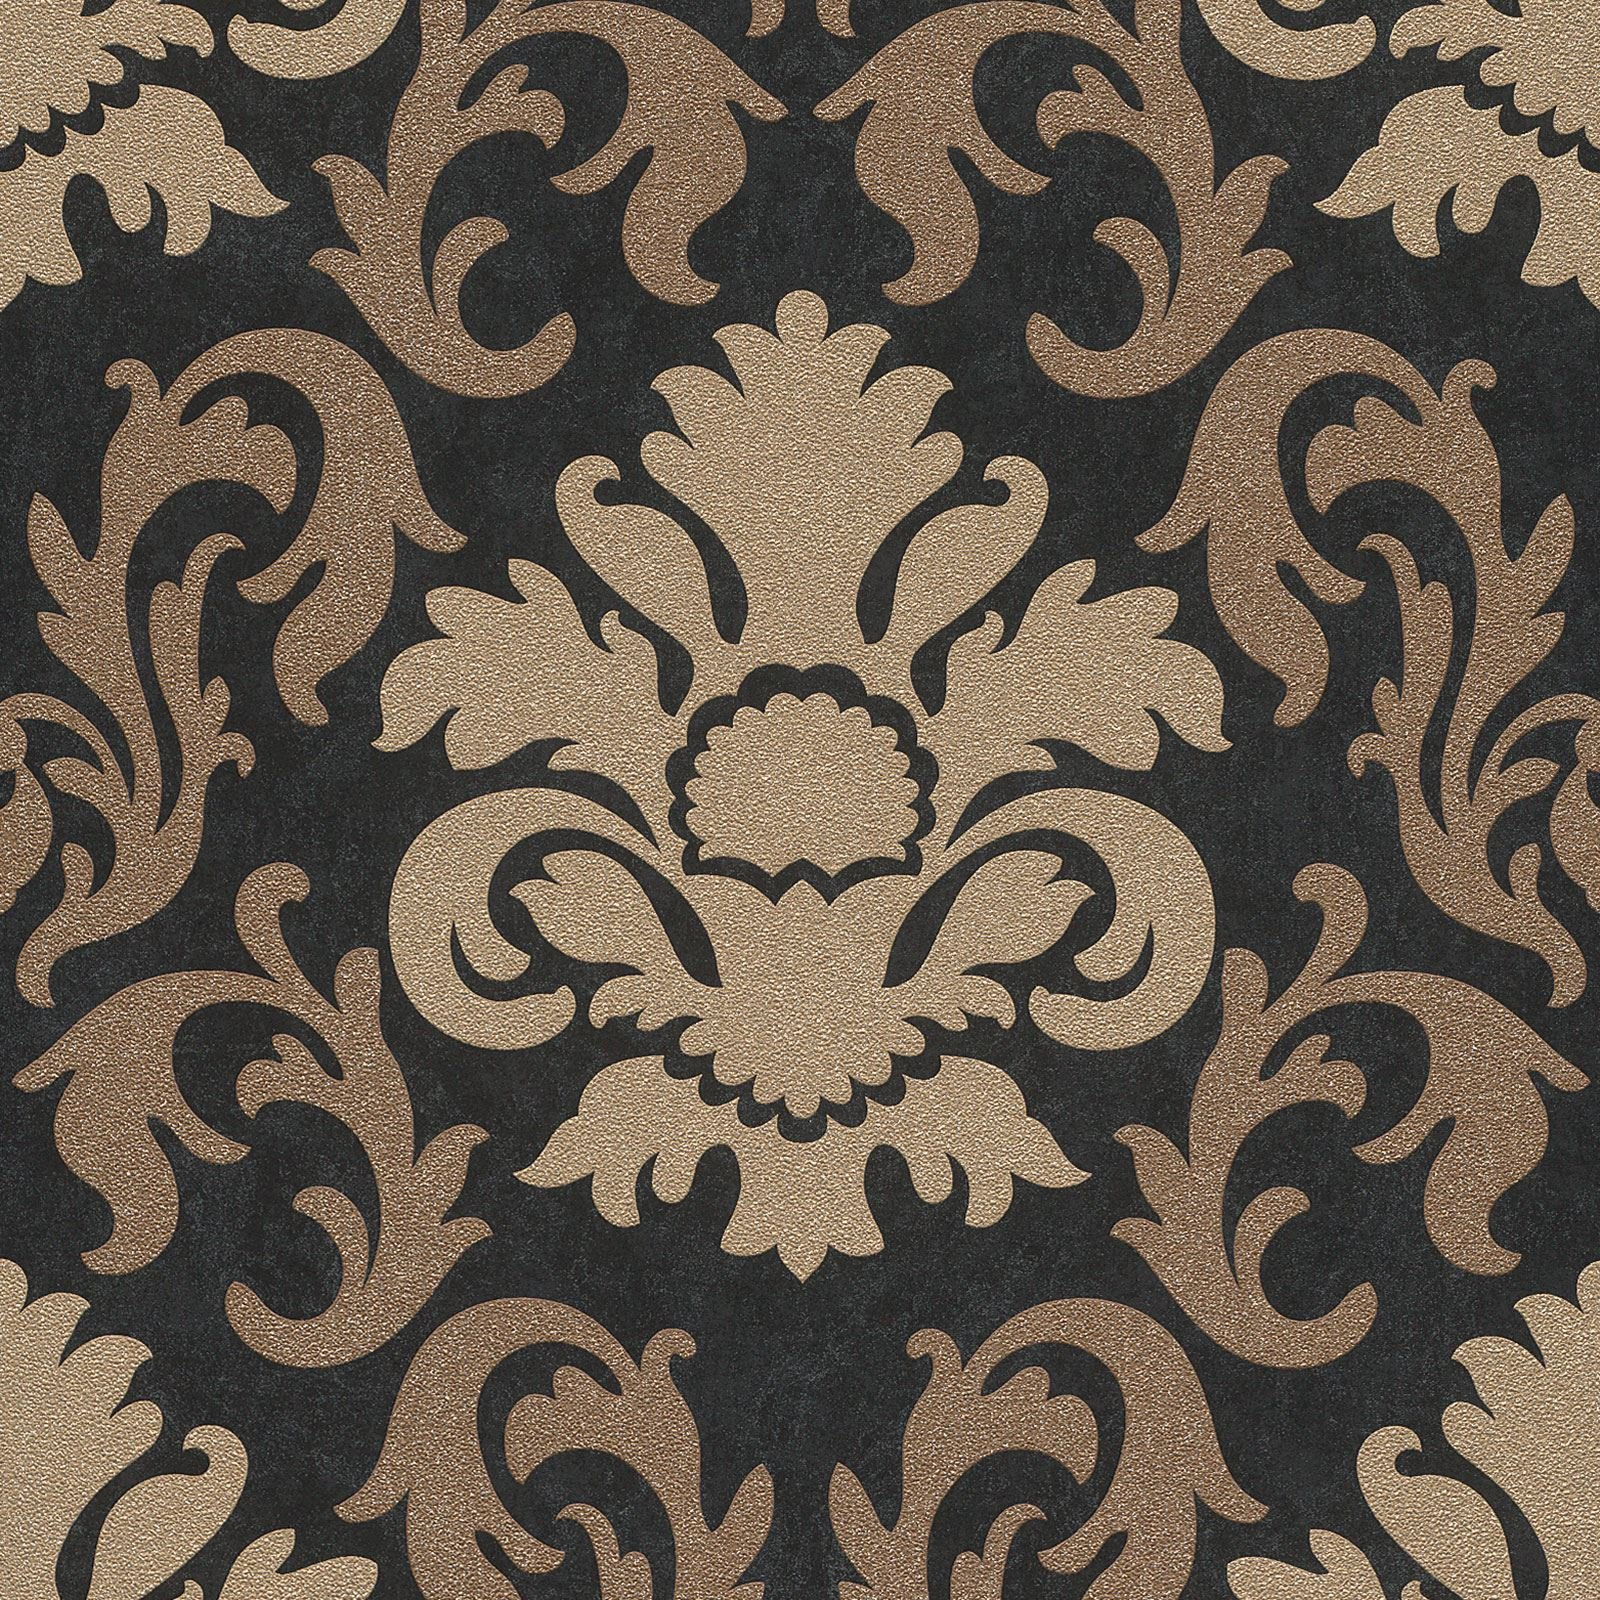 Gold Glitter Damask Wallpaper Gold And Black 13343 90 Amazon Co Uk Diy Tools